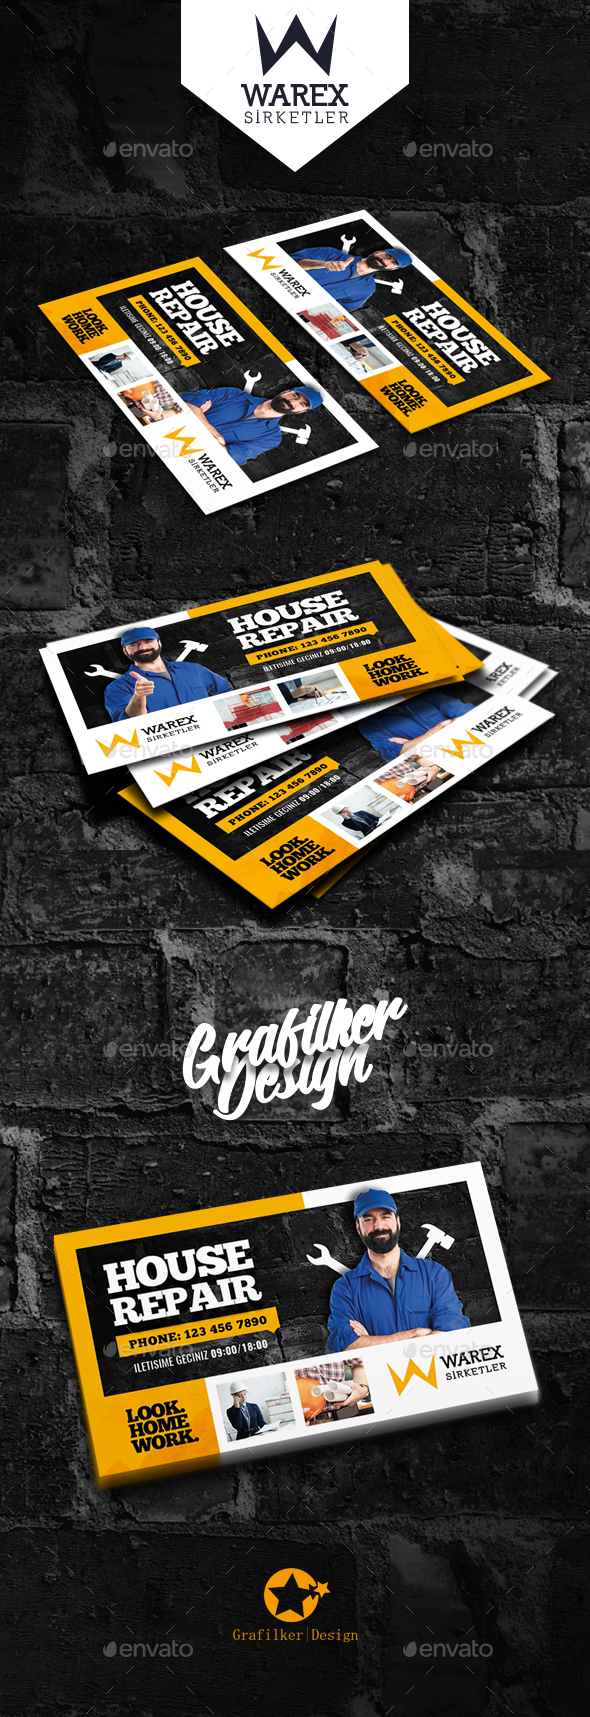 House Repair Business Card Templates by grafilker | GraphicRiver